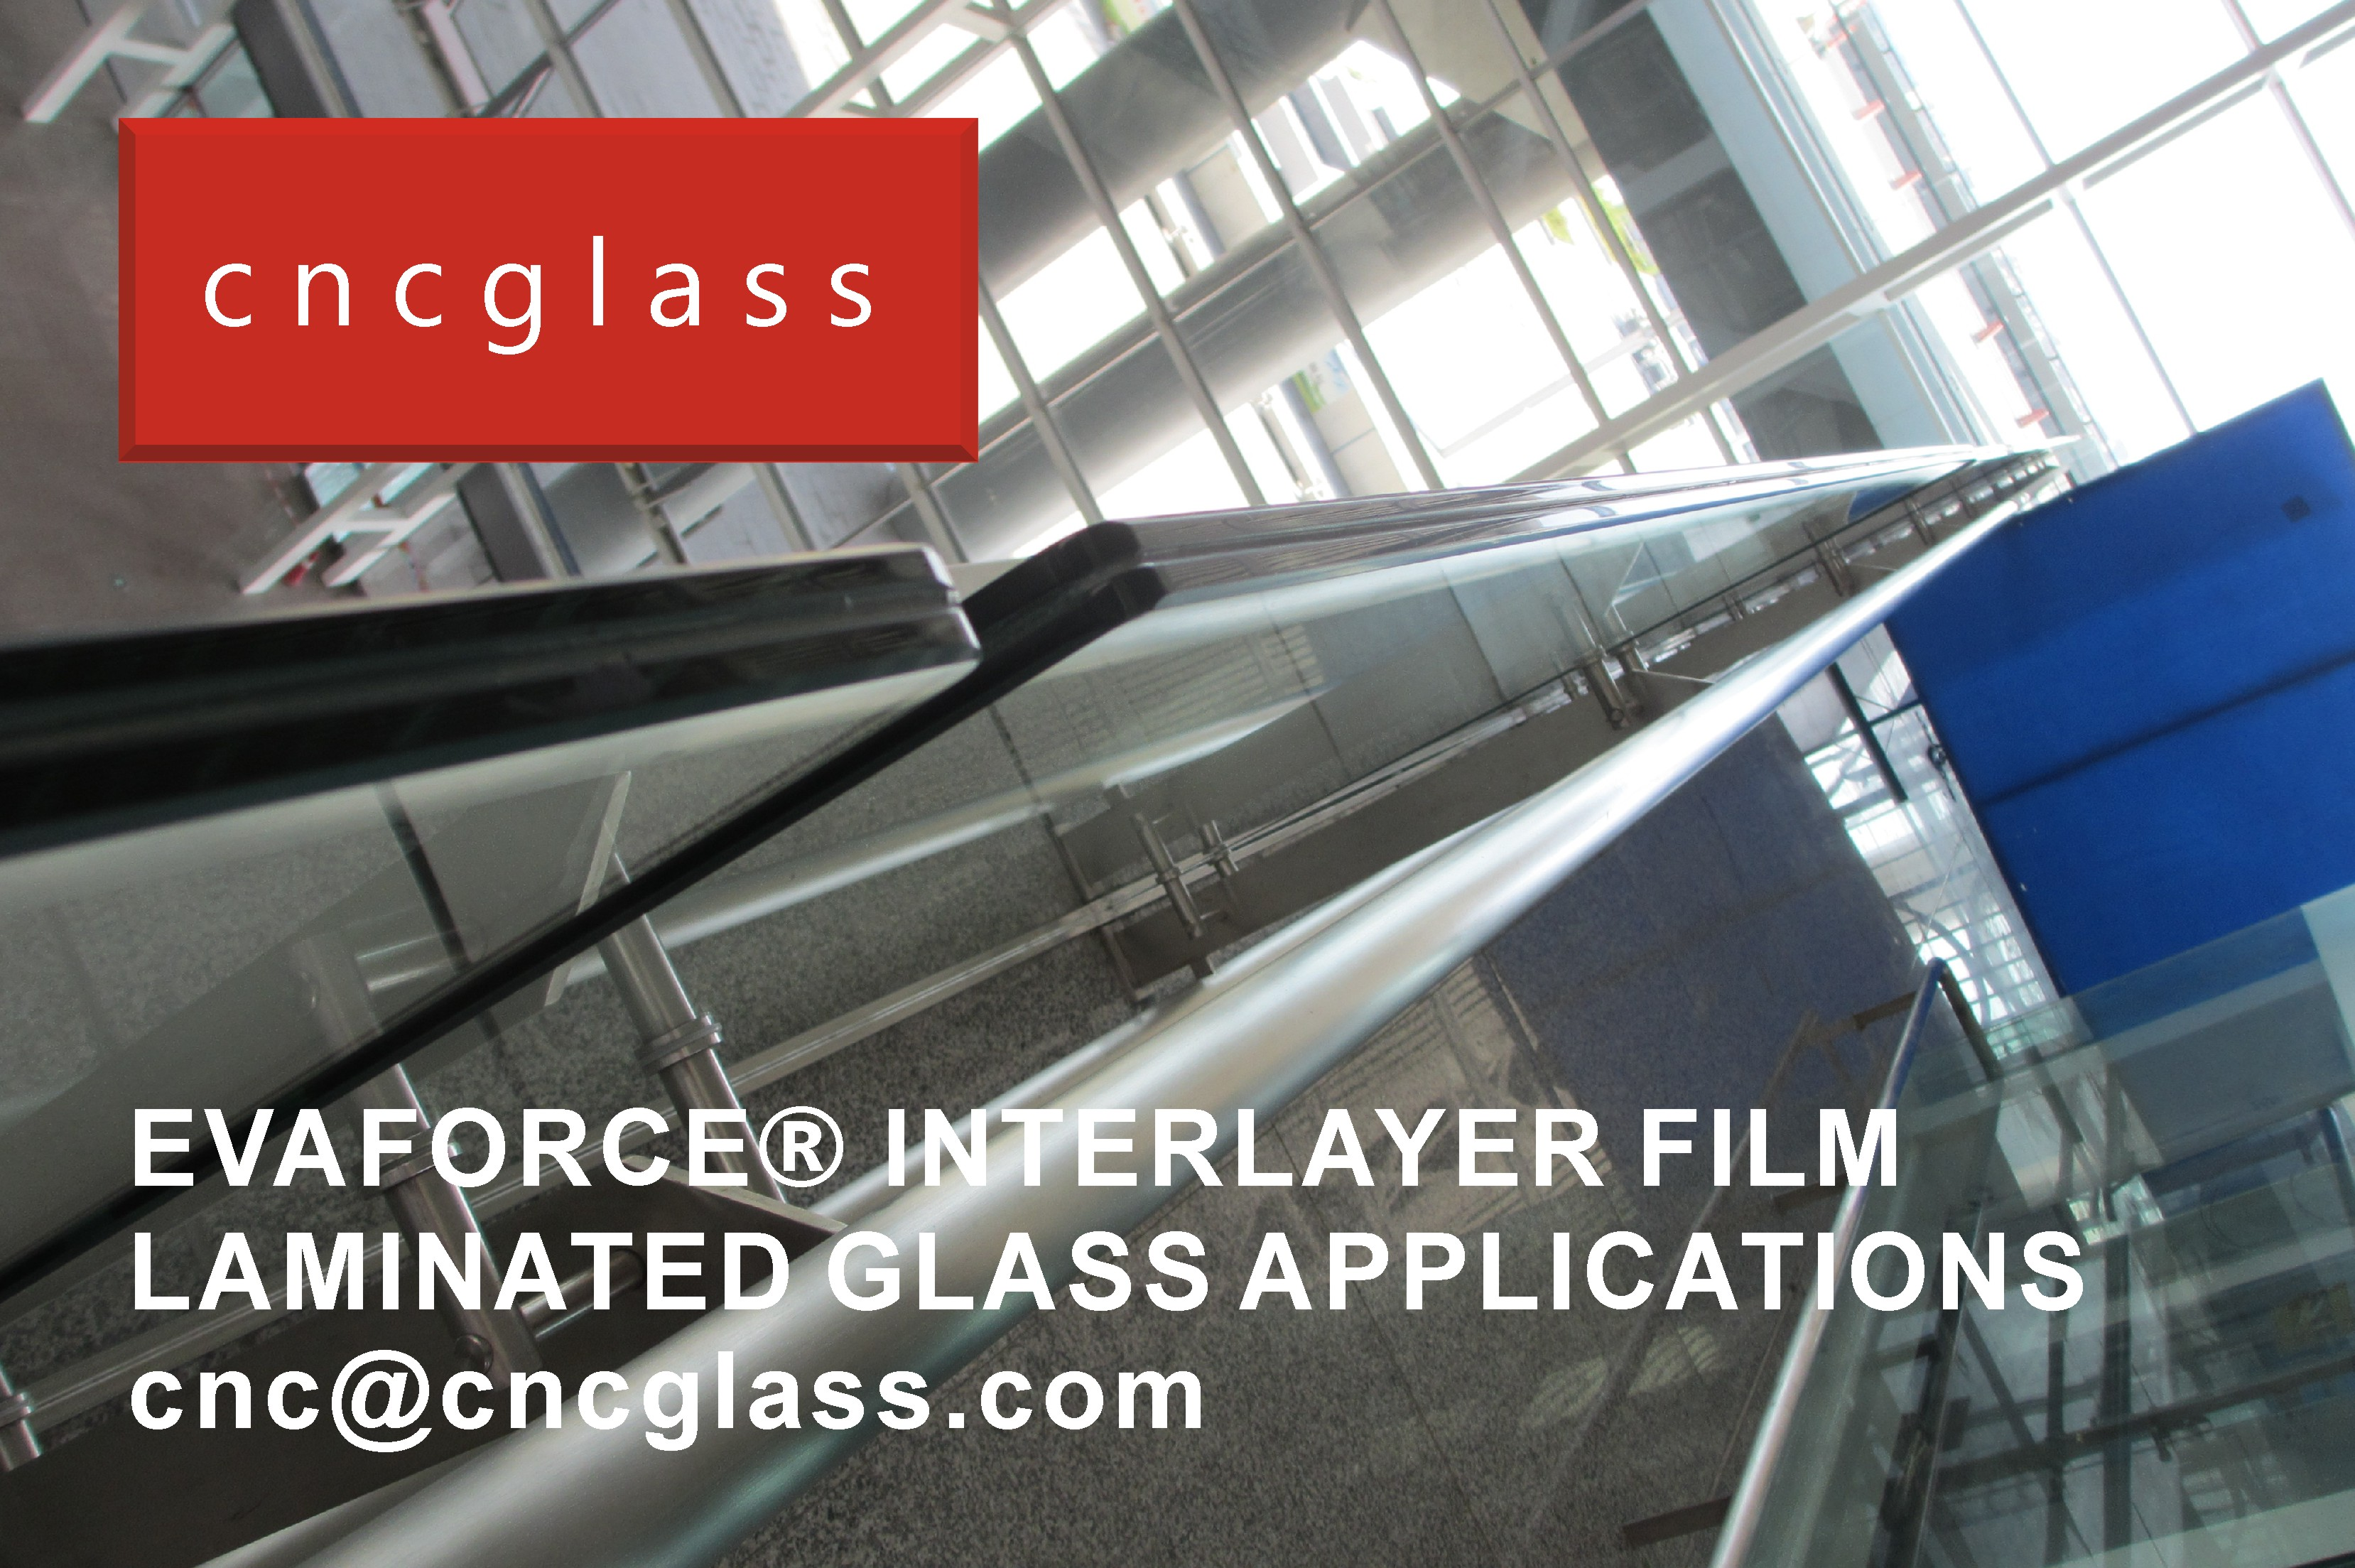 EVAFORCE INTERLAYER FILM LAMINATED GLASS APPLICATIONS (13)